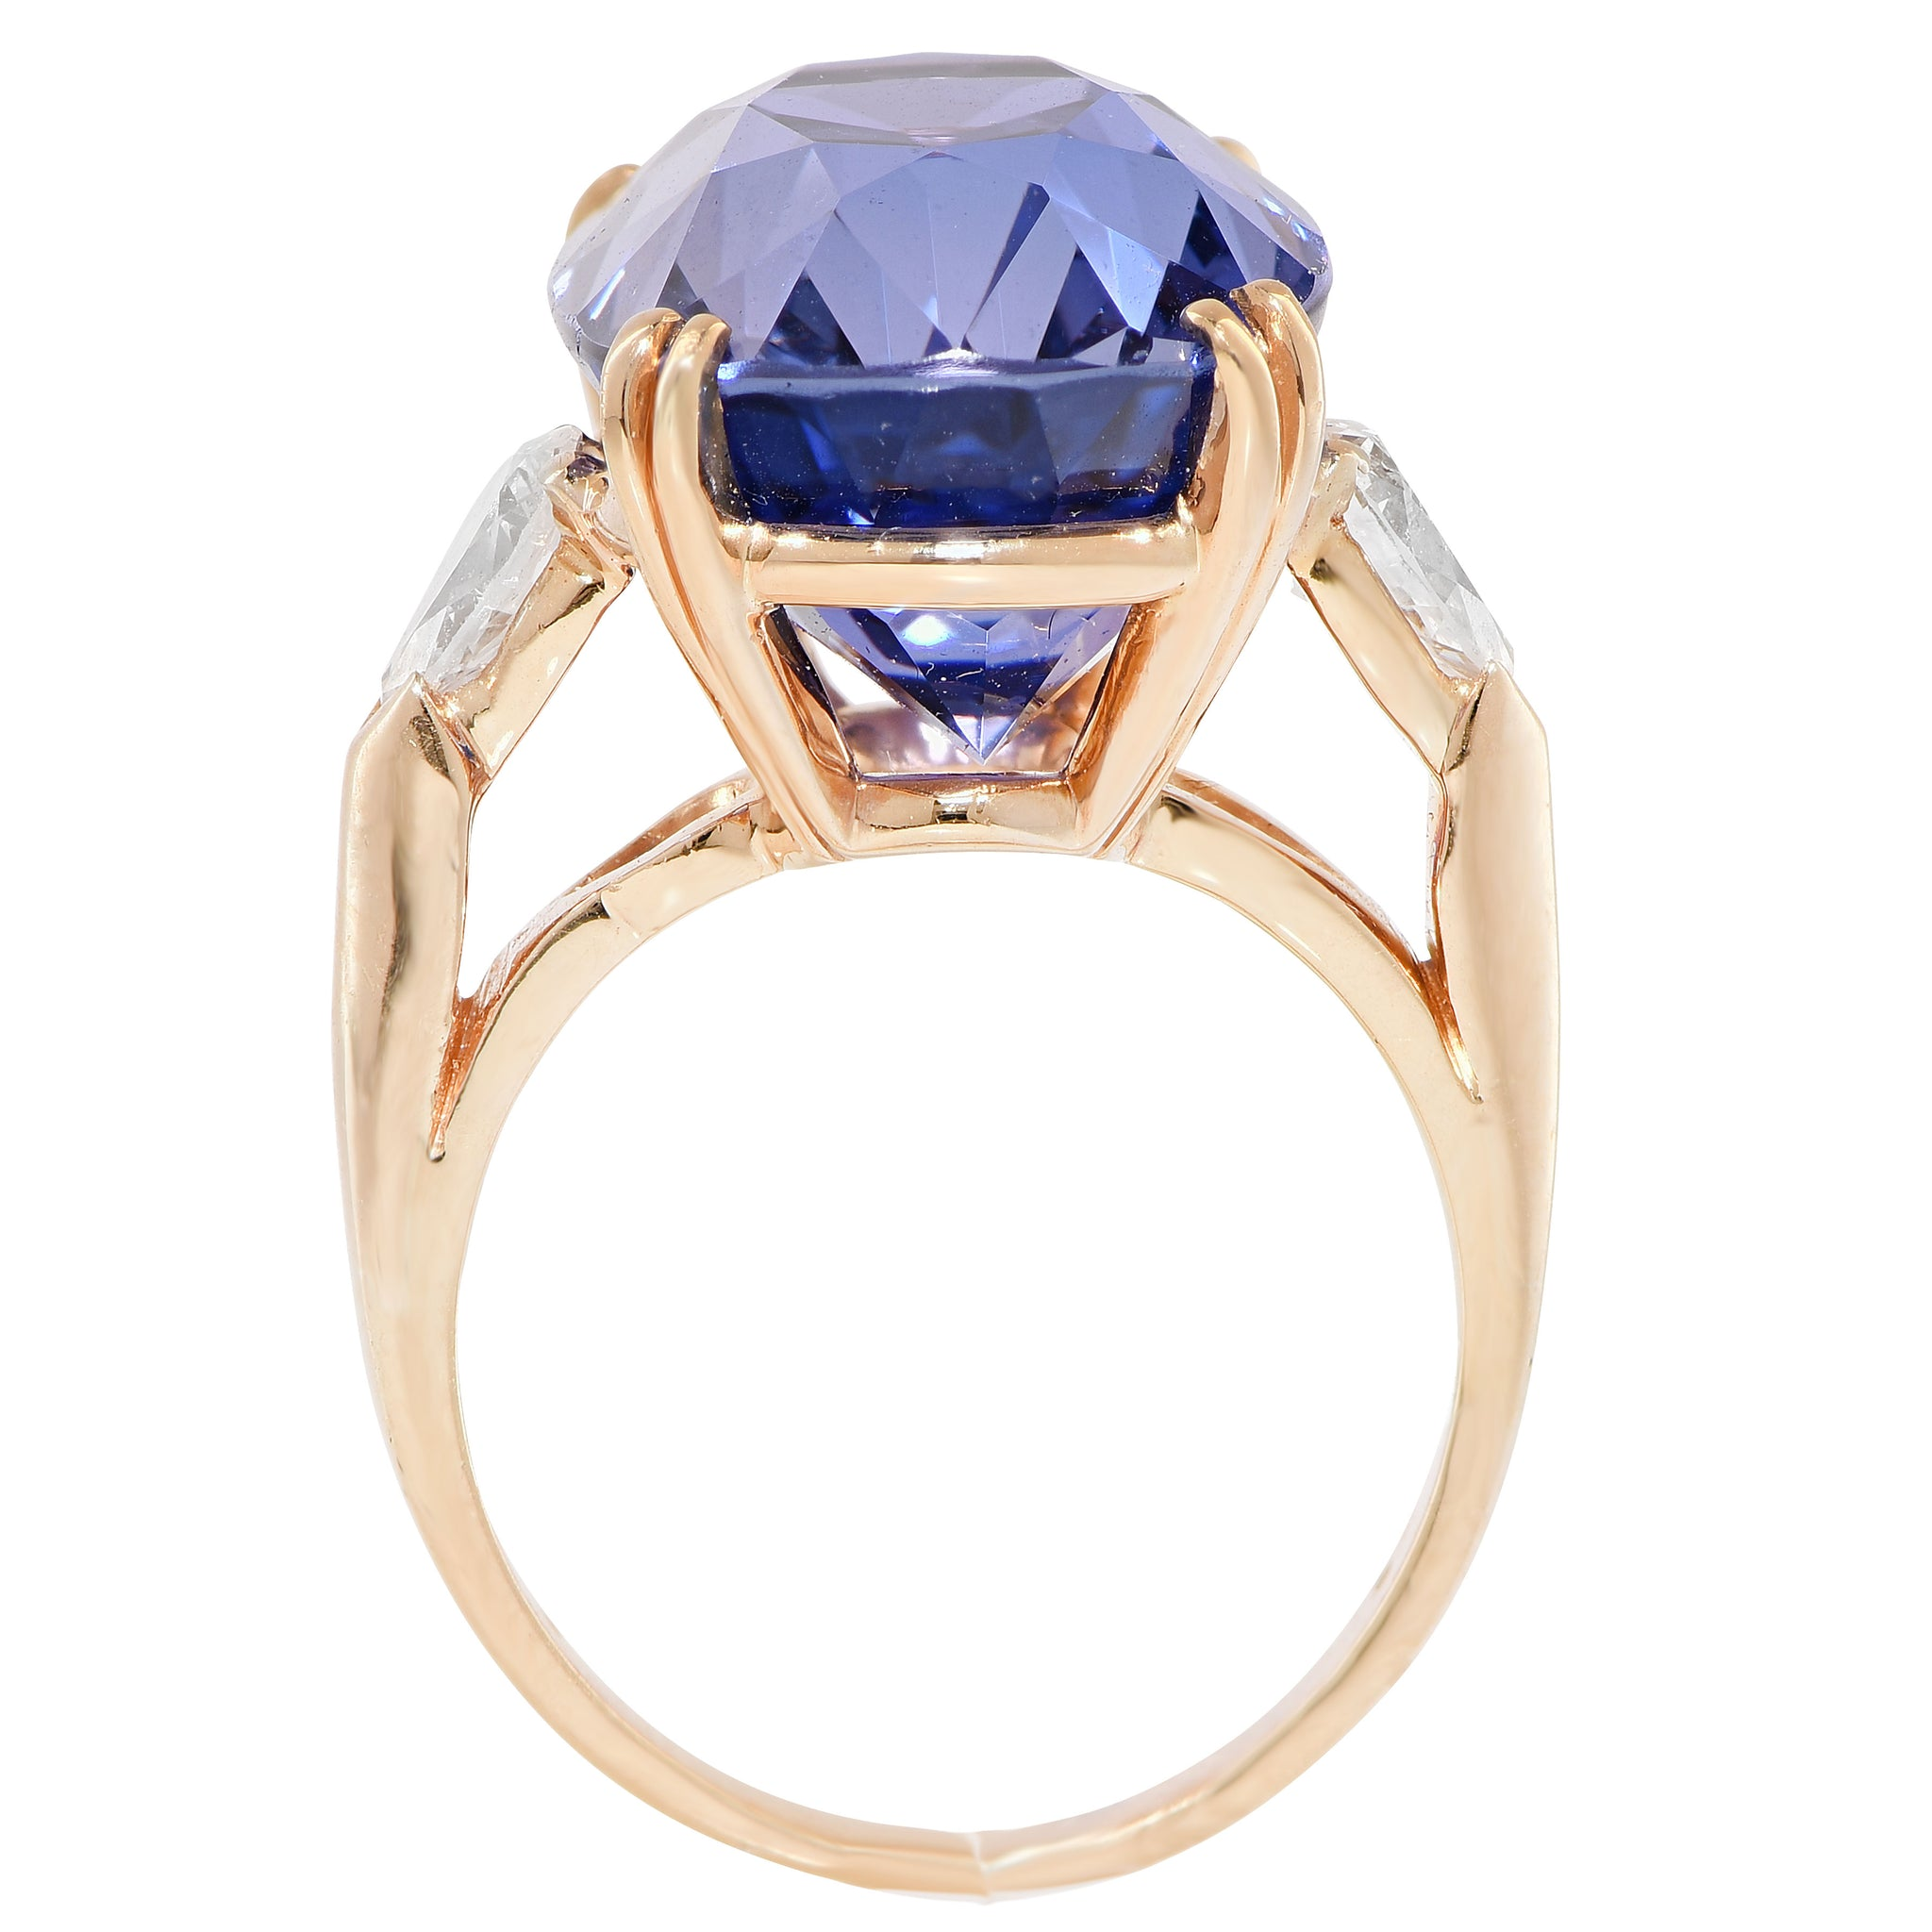 gemstones fancy price engagement kashmir ring two break mark blog and sapphire diamonds records rings colored